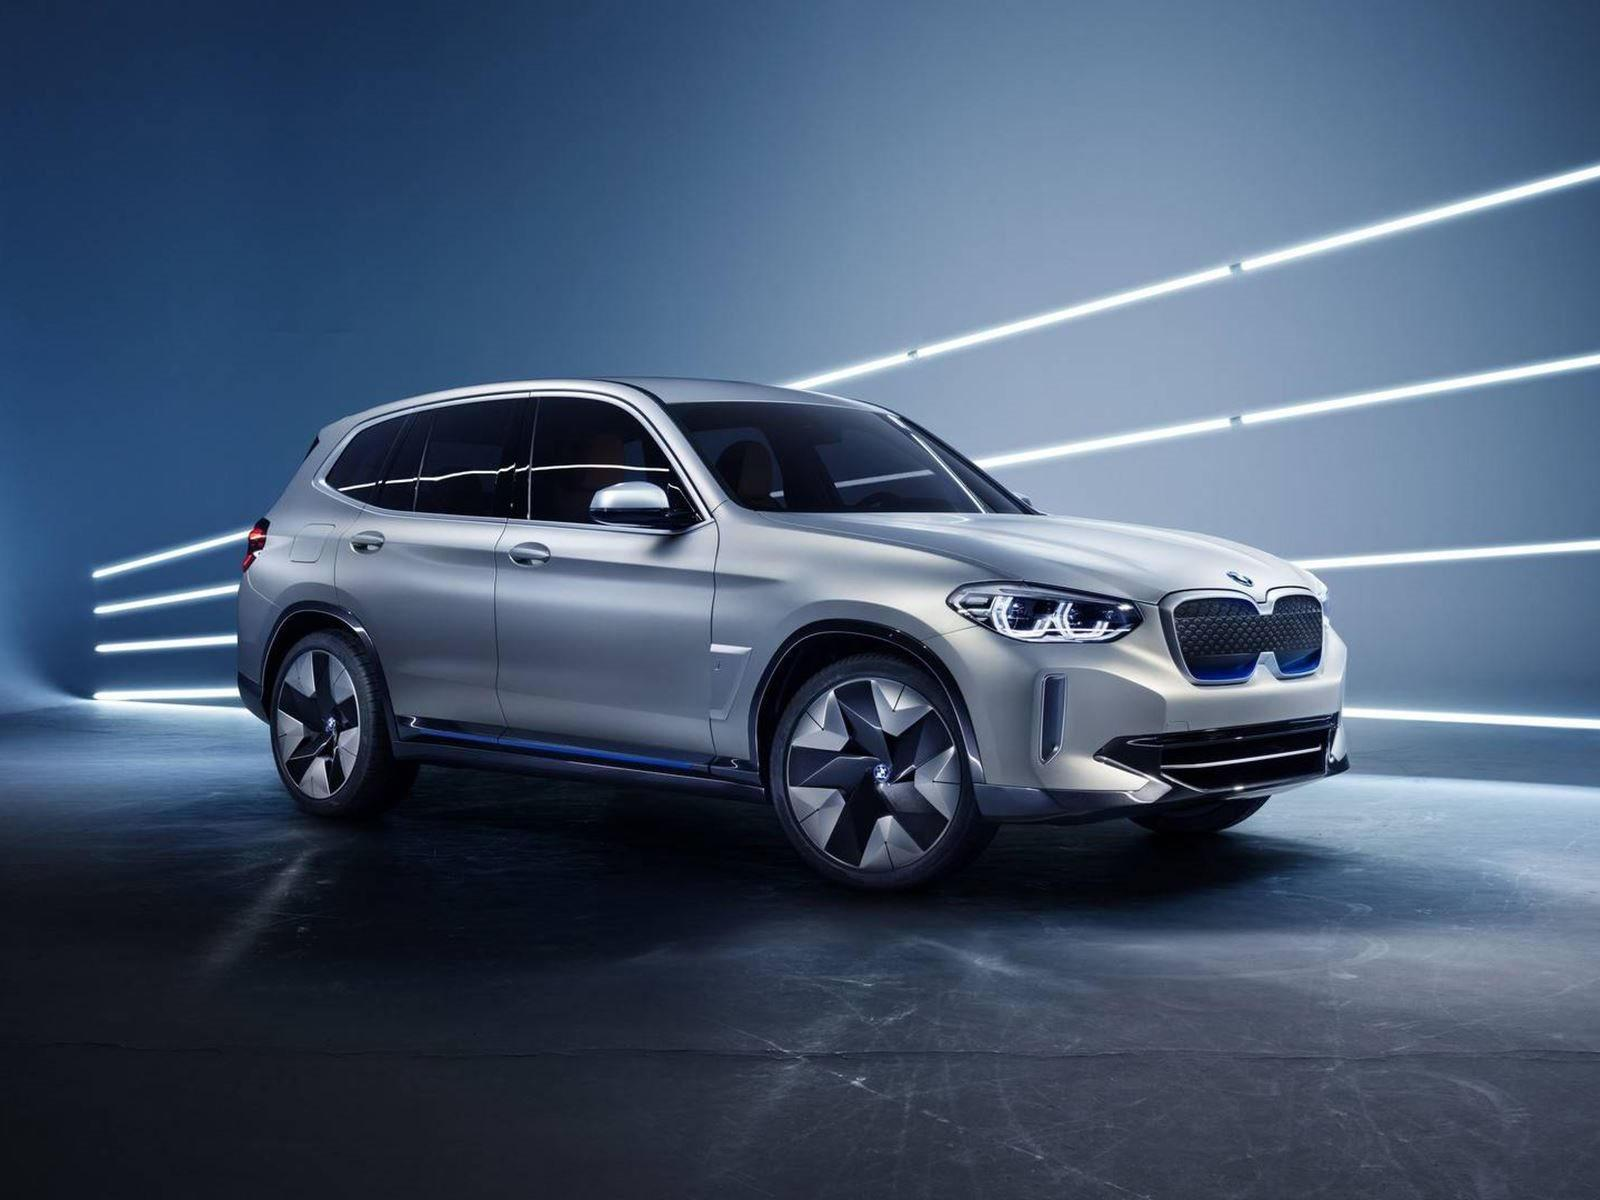 BMW X3 Plug-In Hybrid Will Have Hot Hatch Levels Of Power - CarBuzz